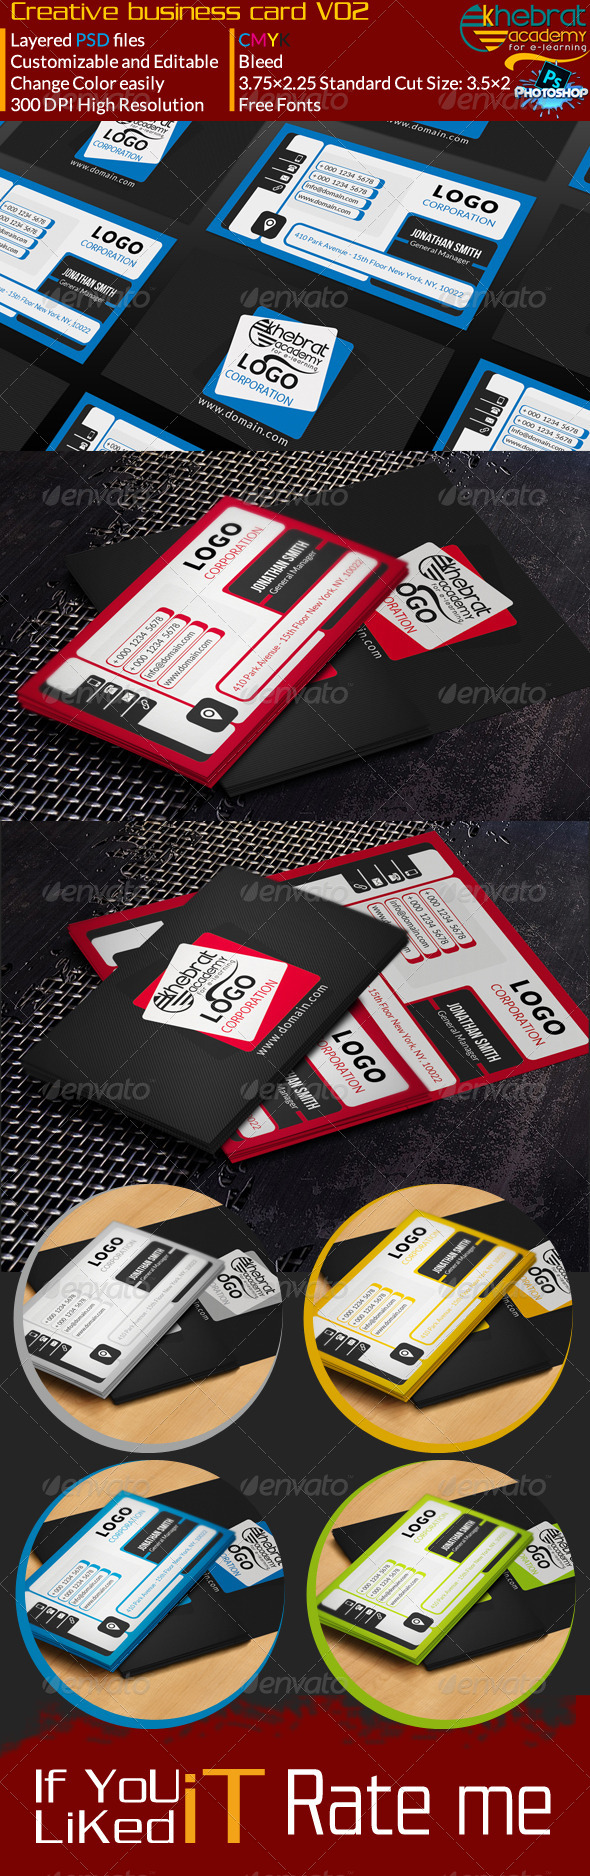 GraphicRiver Creative Business Card V02 7051481